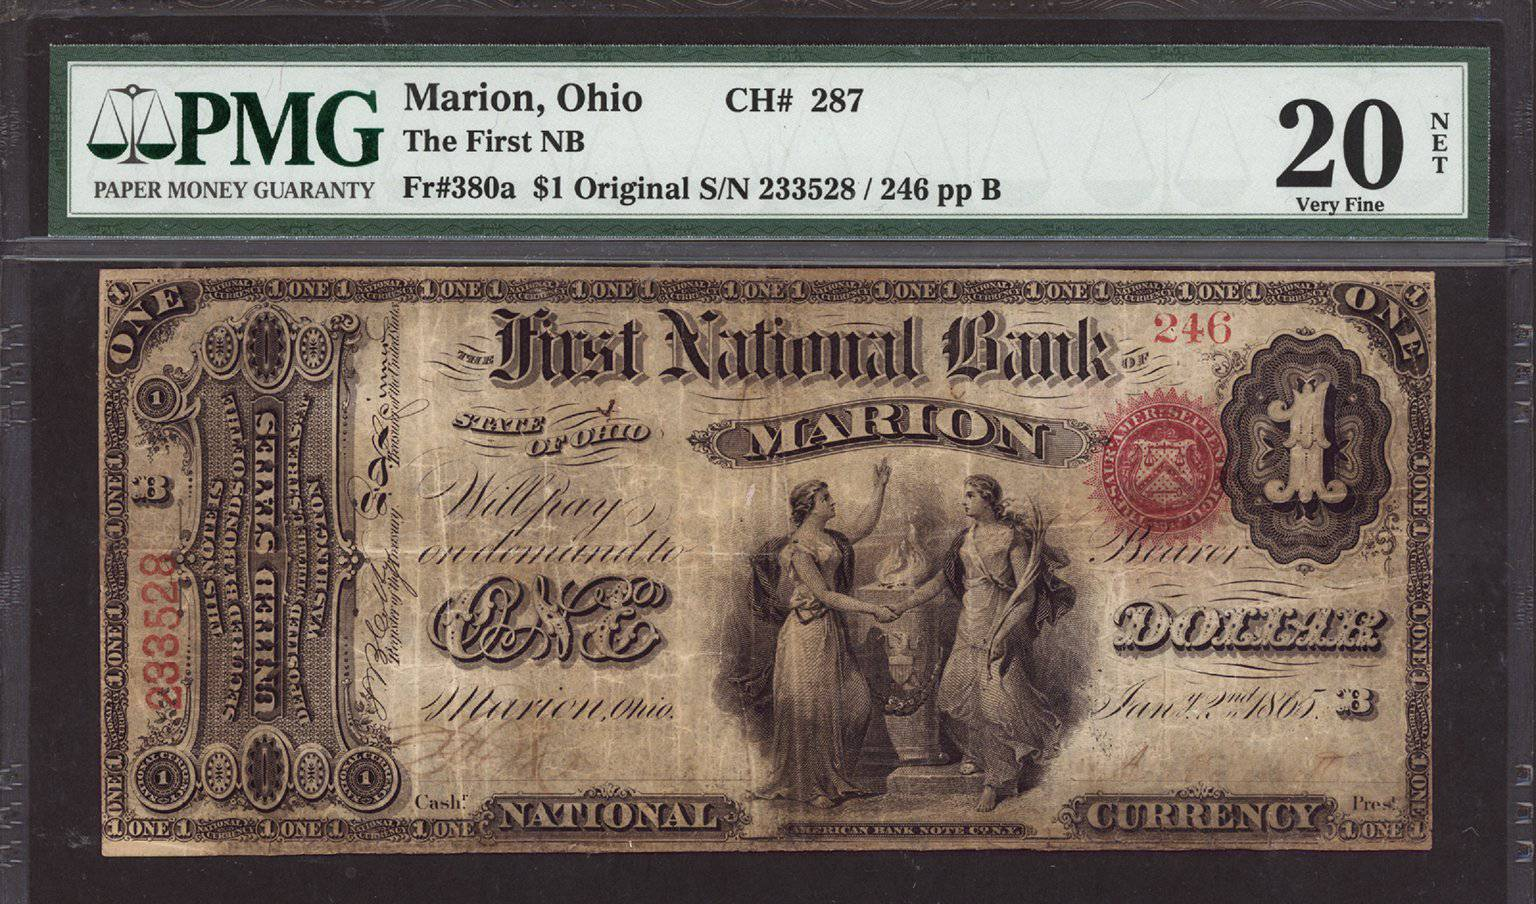 1865 - $1 Note - Marion - Ohio - CH 287 - FR 380a - PMG VF20 NET